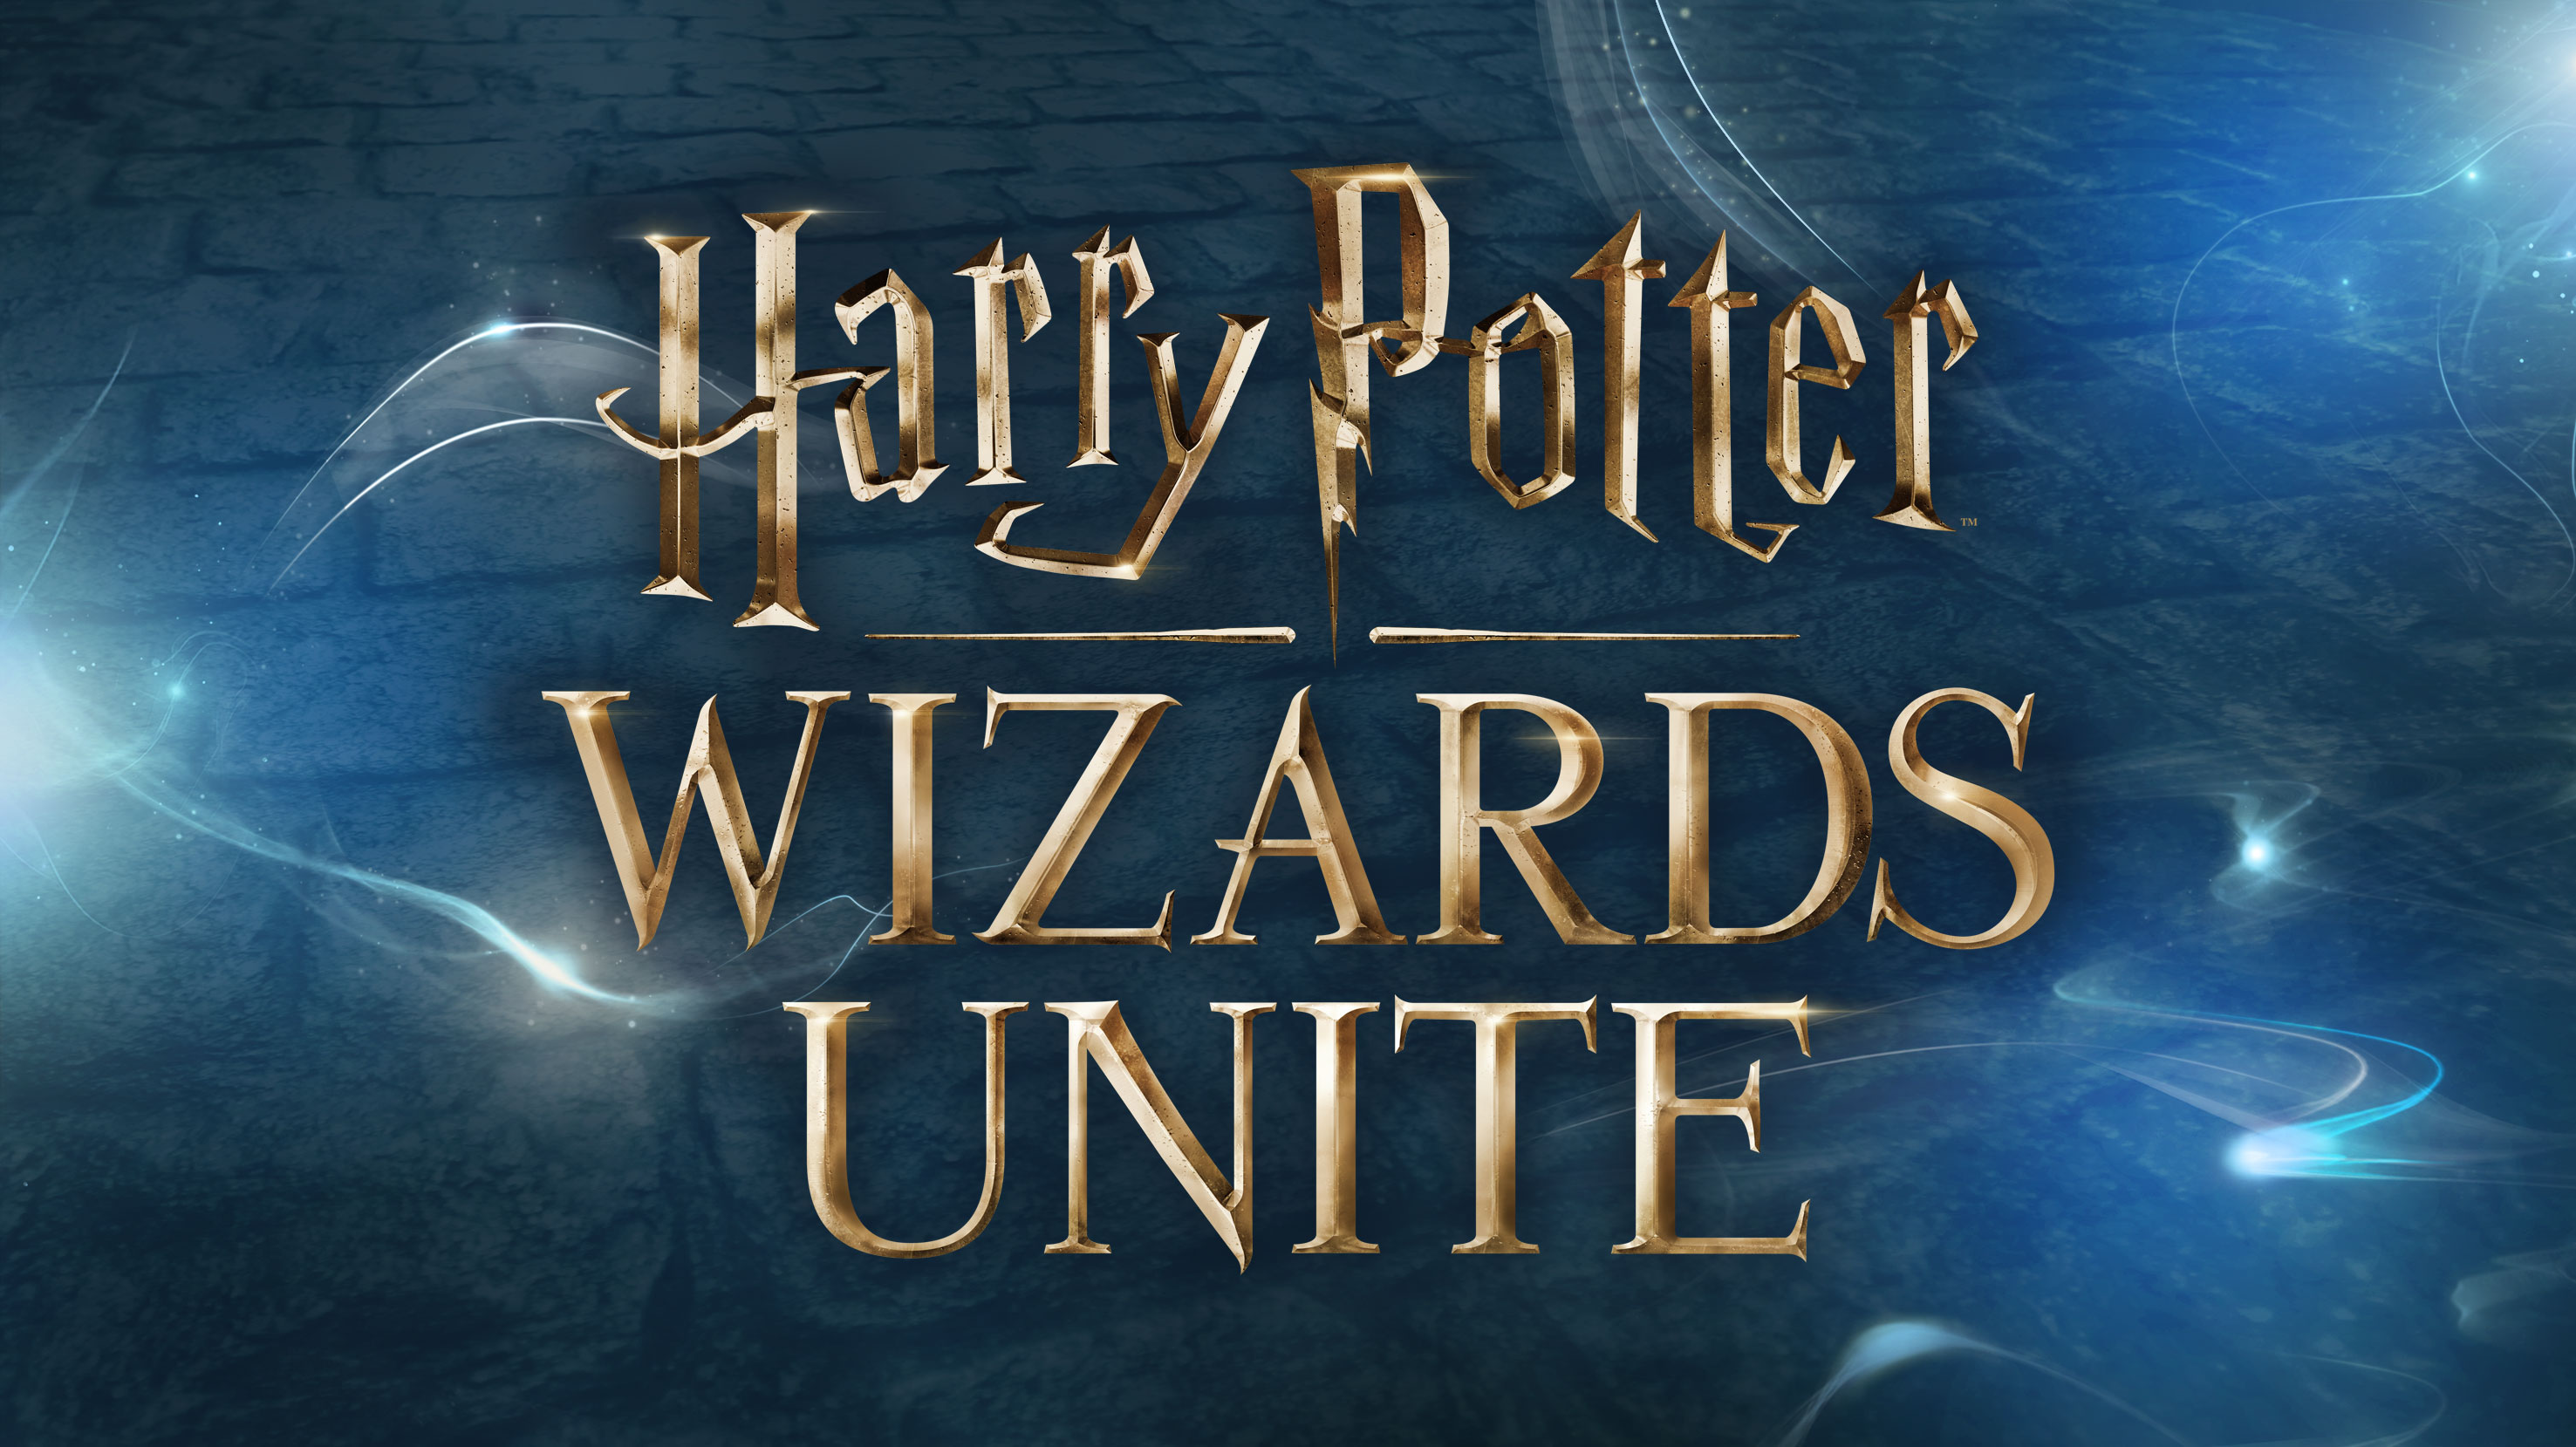 Harry Potter: Wizards Unite is ready to 'avada kedavra' Pokemon Go